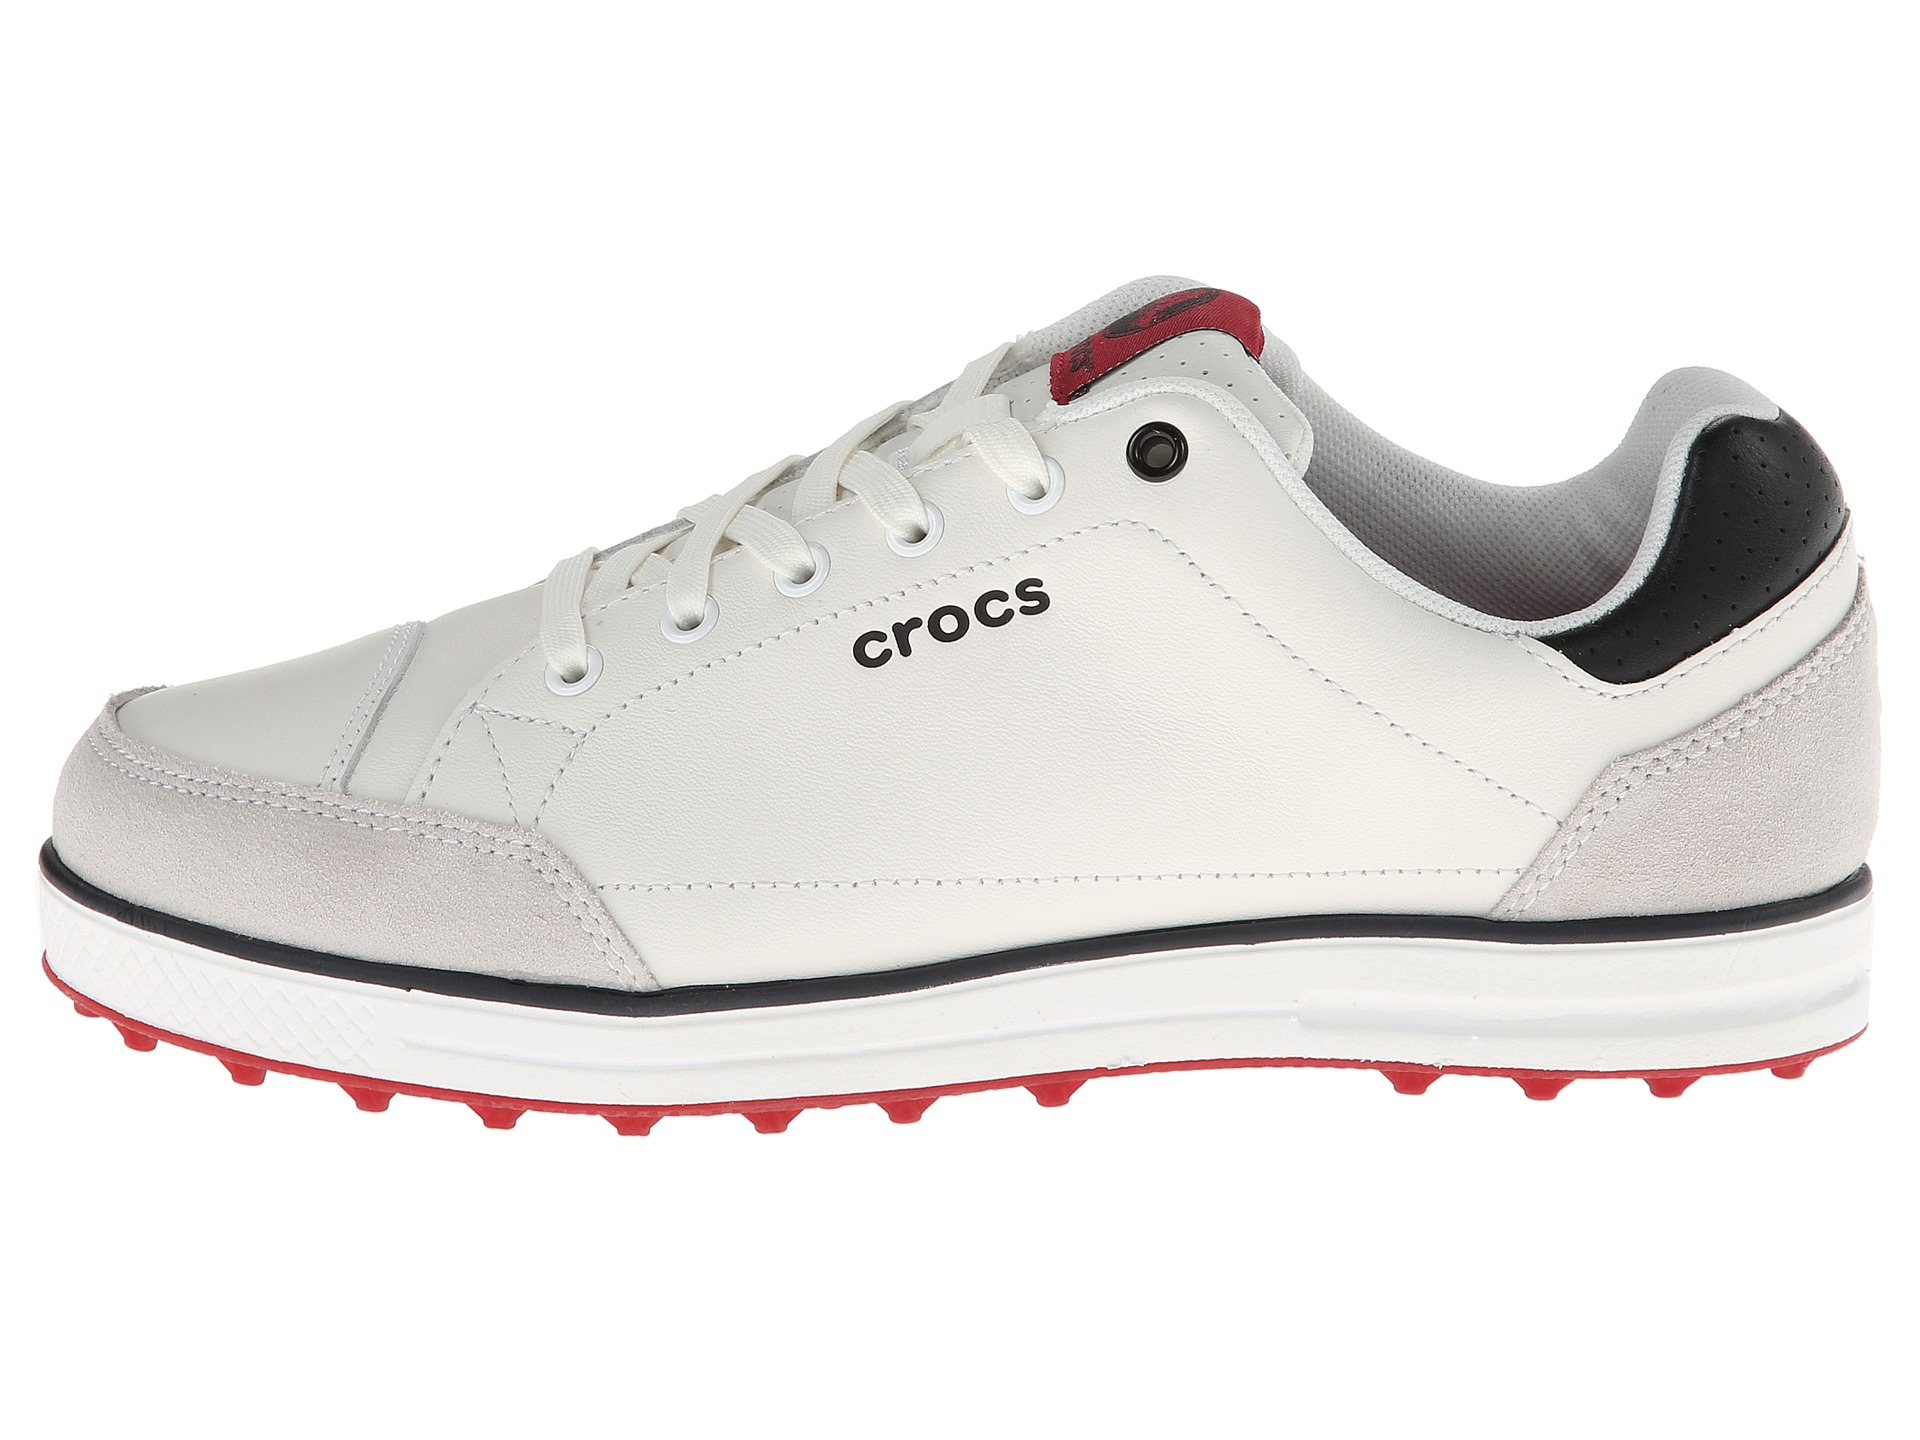 Crocs Golf Shoes Waterproof